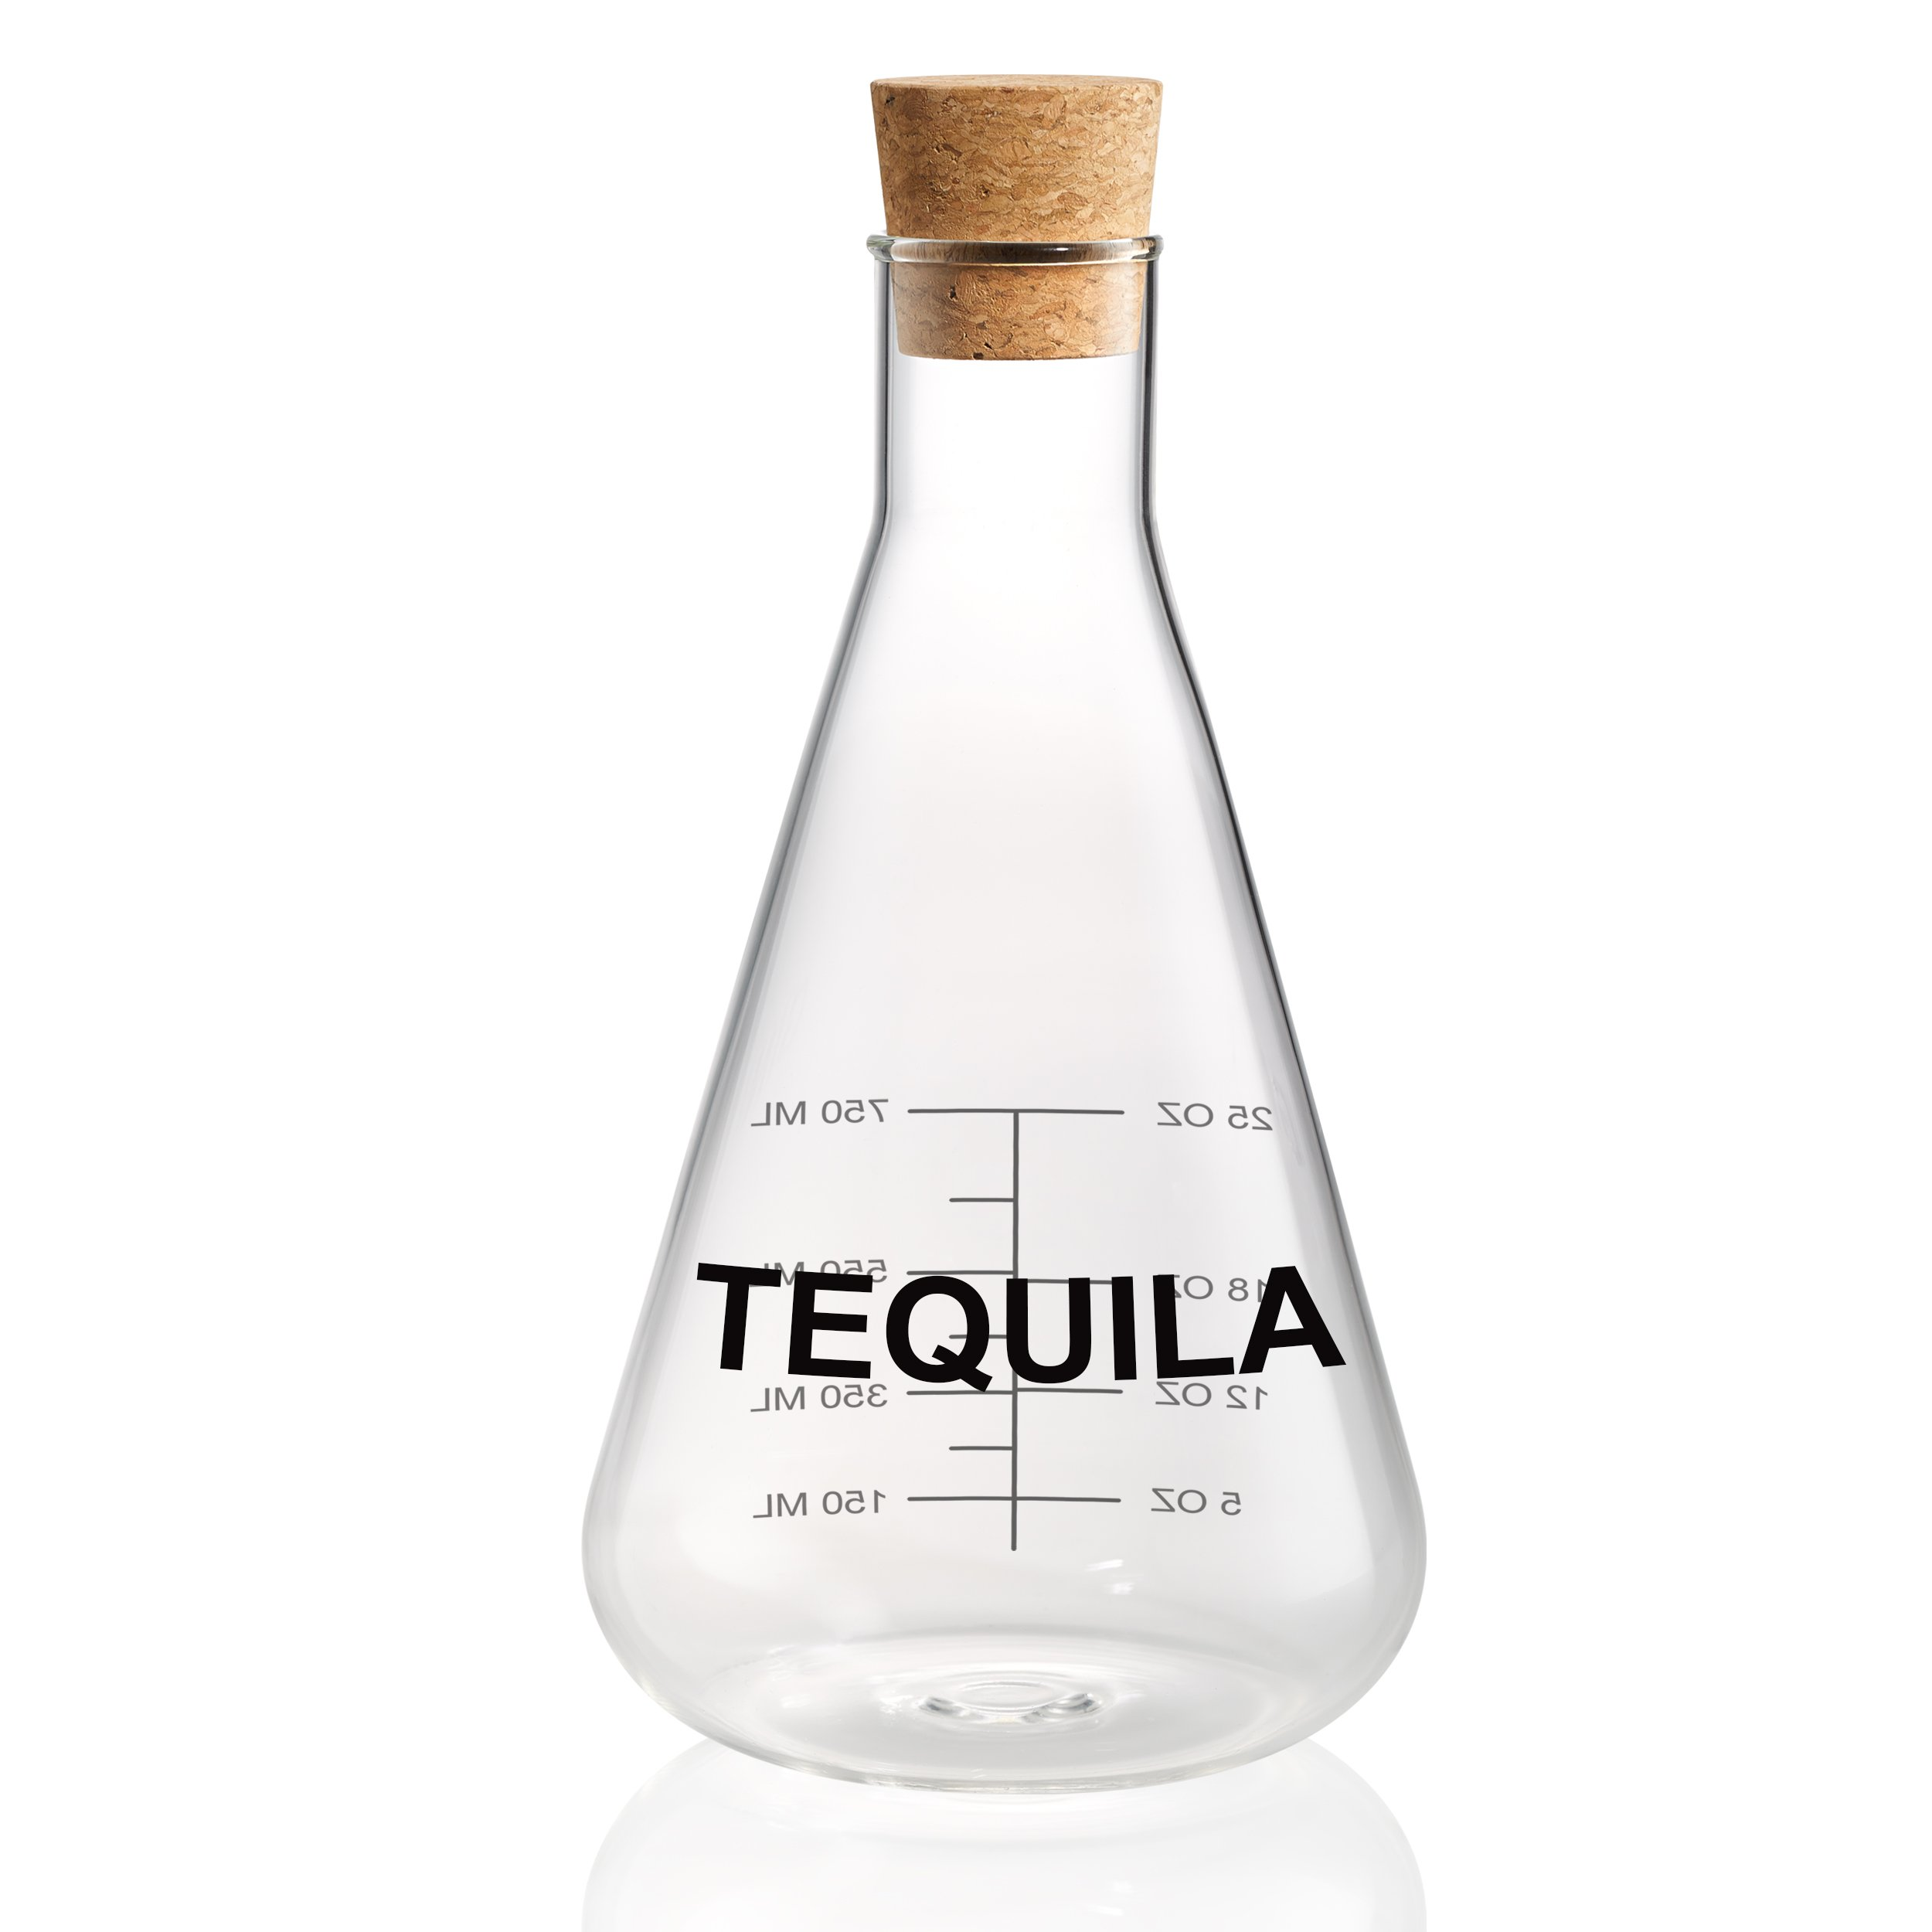 Artland Mixology Tequila Decanter in a Wood Crate Gift Box